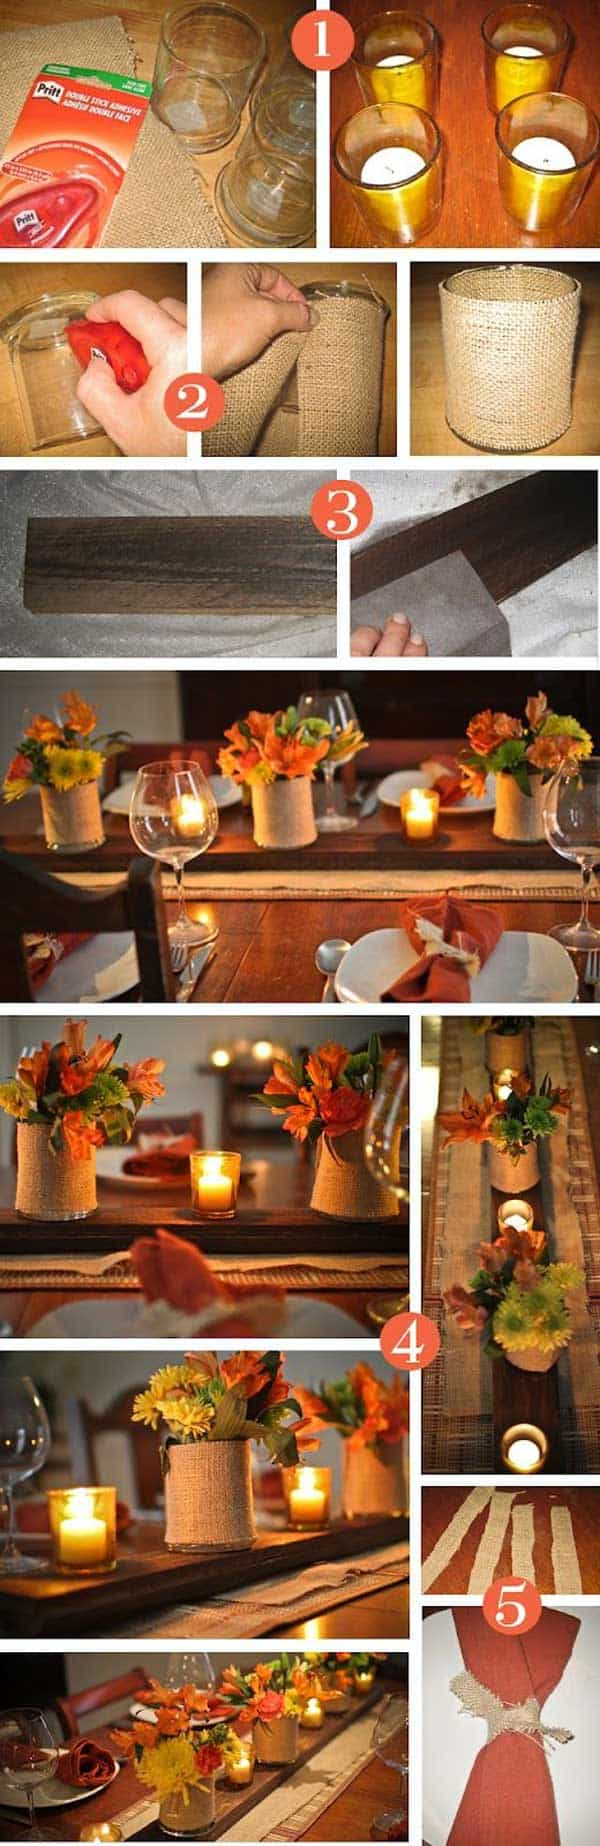 30 Magical DIY Fall Decorations For Your Household homesthetics ideas (20)